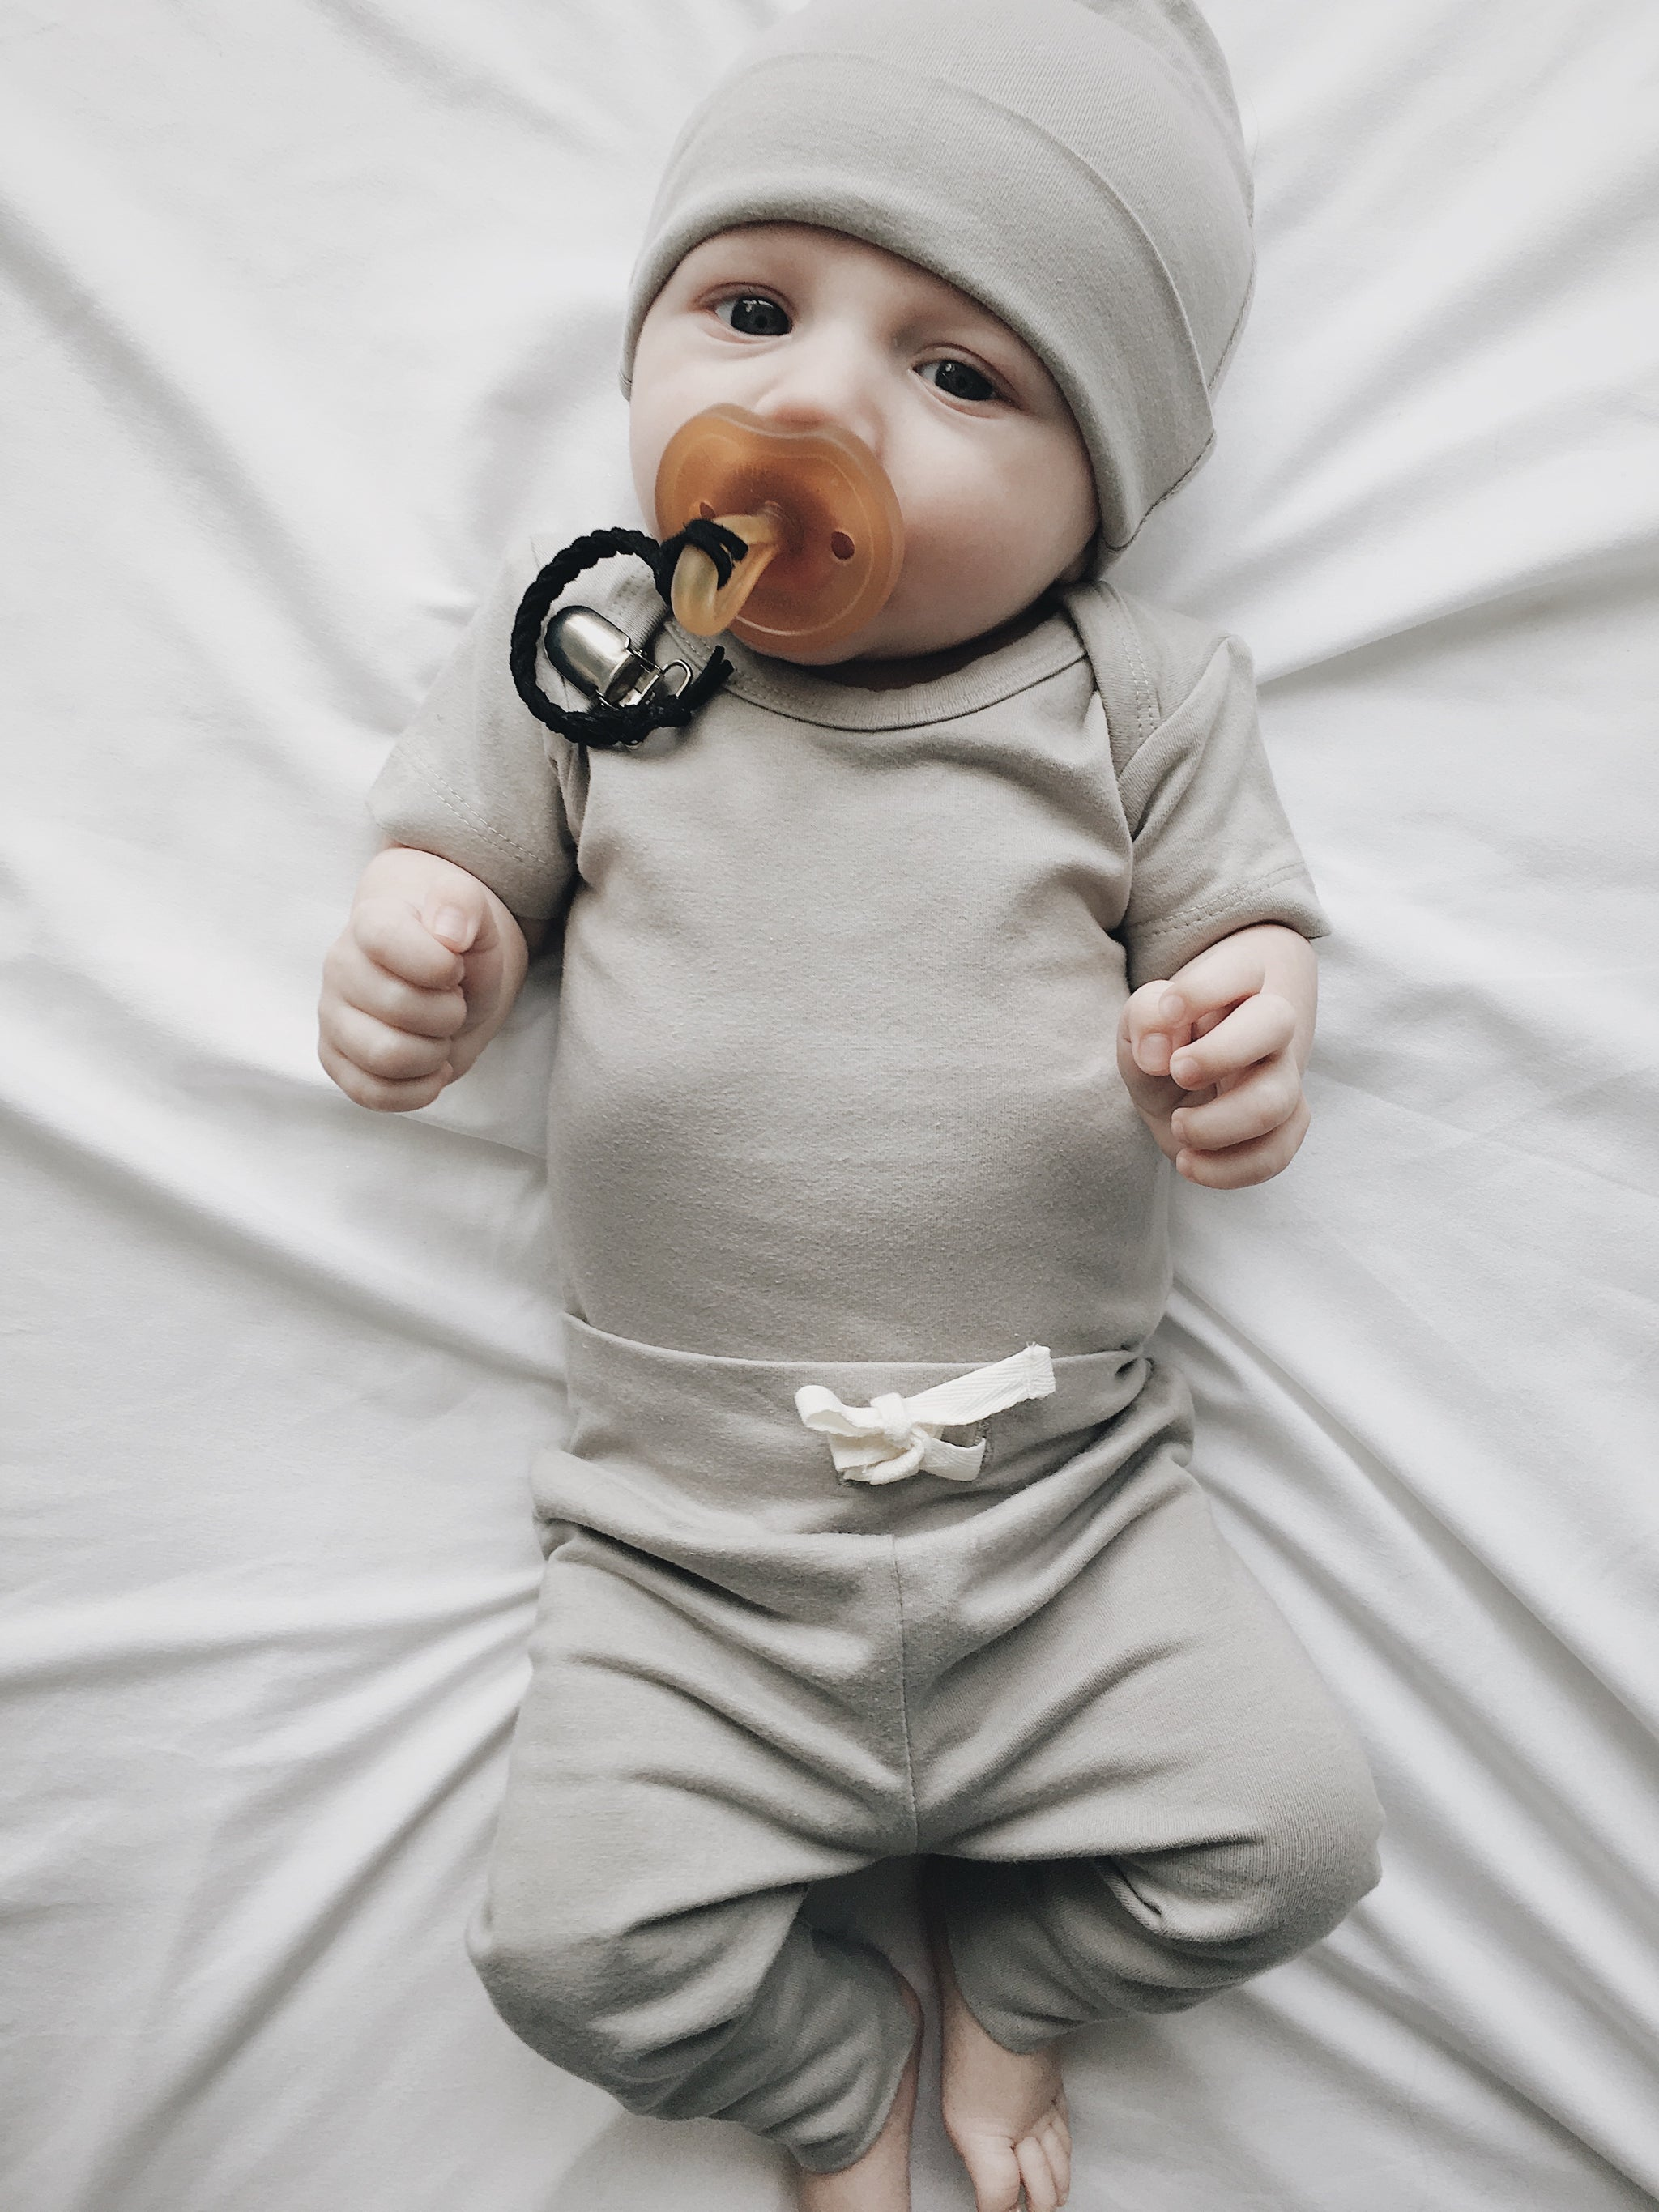 Lucy Lue Organics. Ivory organic bodysuit. Organic baby clothes. Organic newborn outfit. Organic cotton. Organic kids clothes. Organic baby fashion. Ethical clothing. Gender neutral colors. Minimalist modern baby style. Organic Baby products.